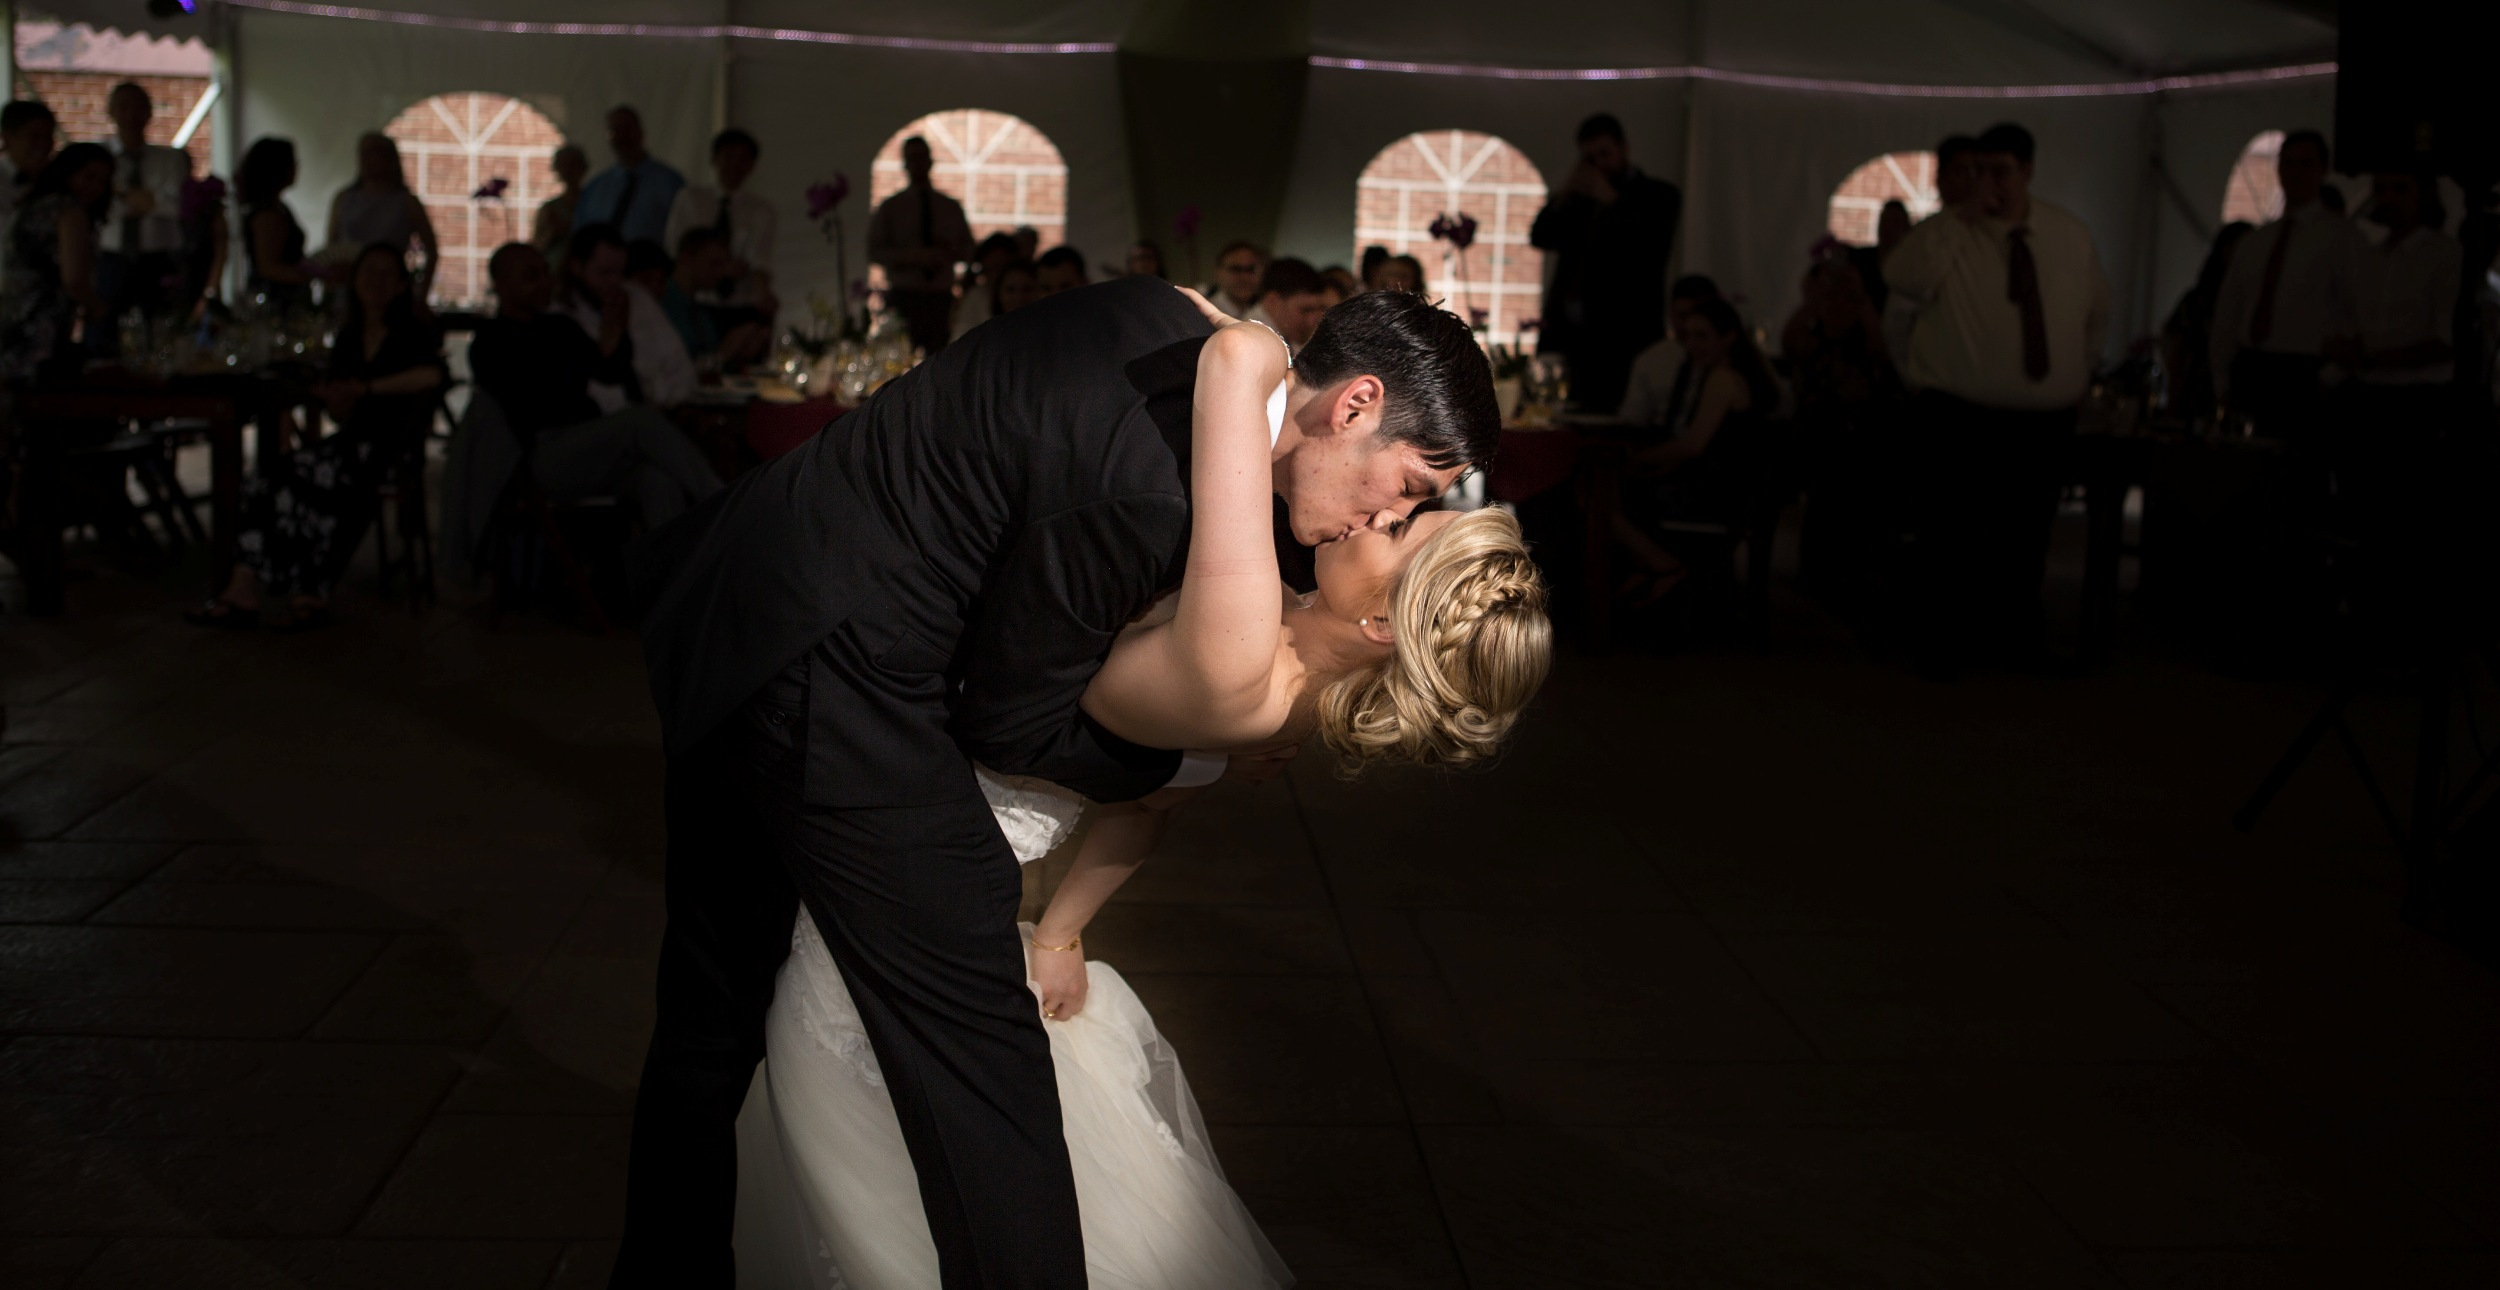 Dip while first dance